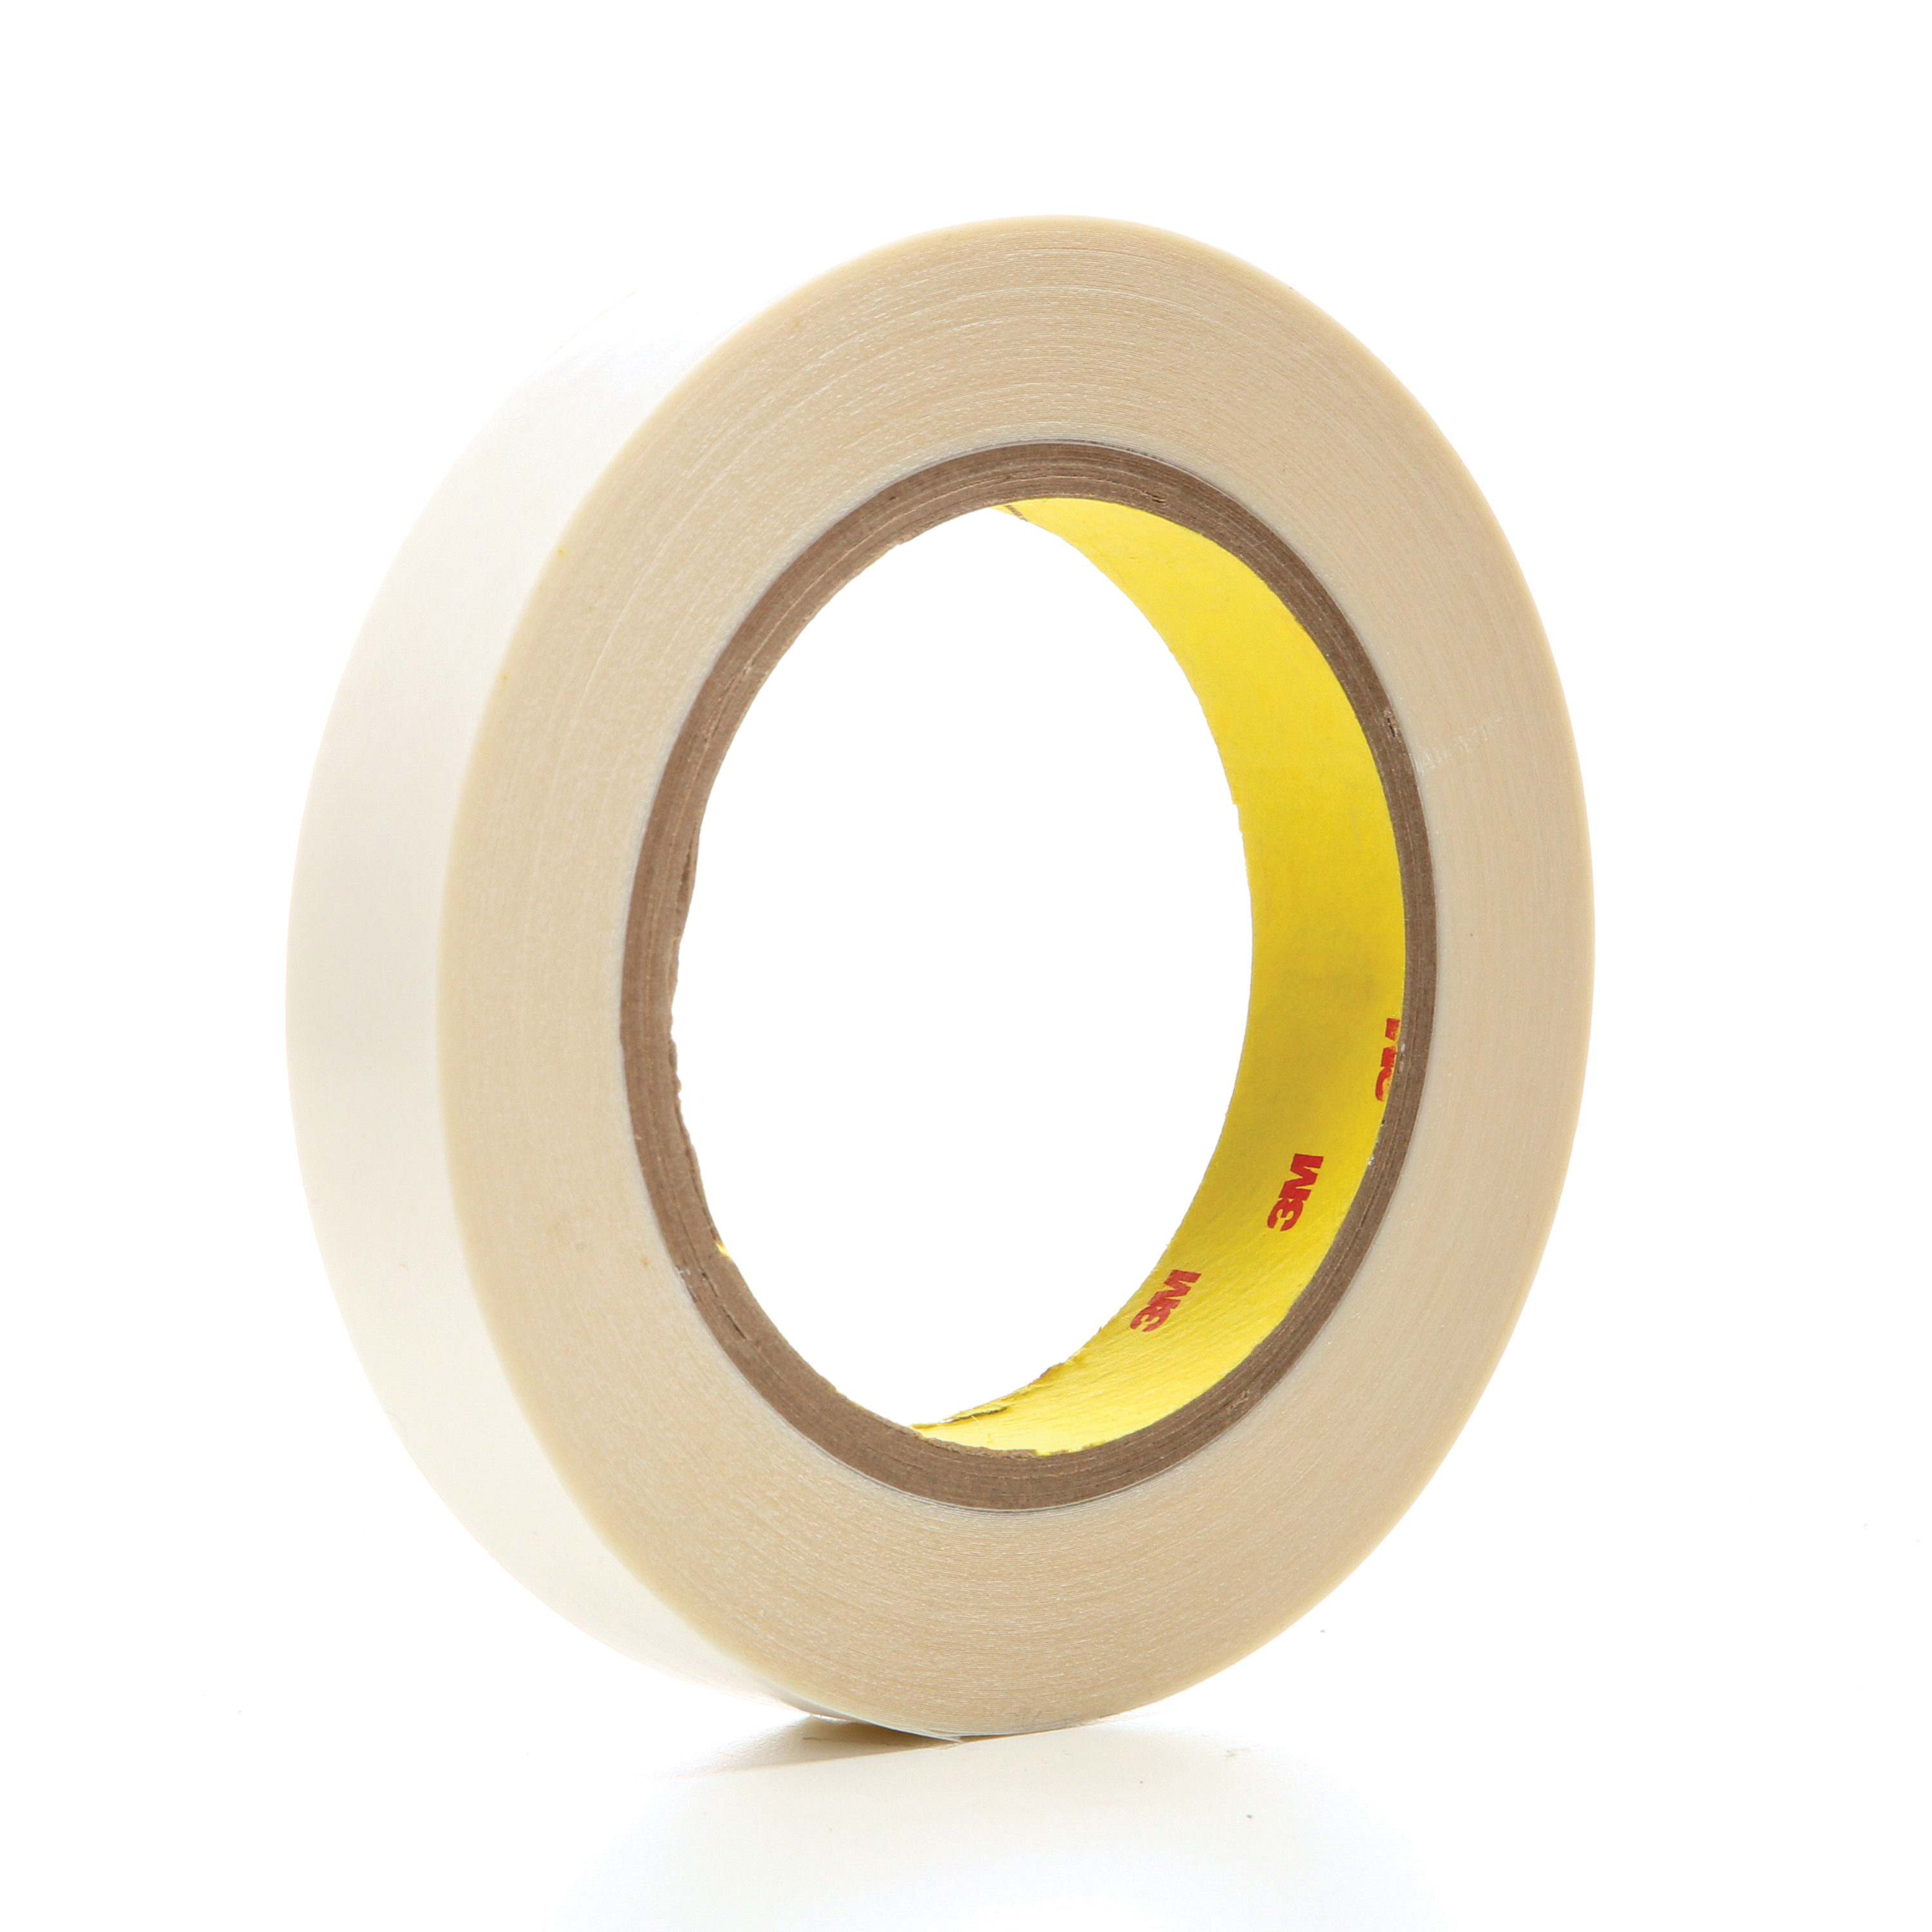 3M™ 021200-04721 Double Coated Film Tape, 36 yd L x 3/4 in W, 6.9 mil THK, Acrylic Adhesive, Polyester Film Backing, Clear